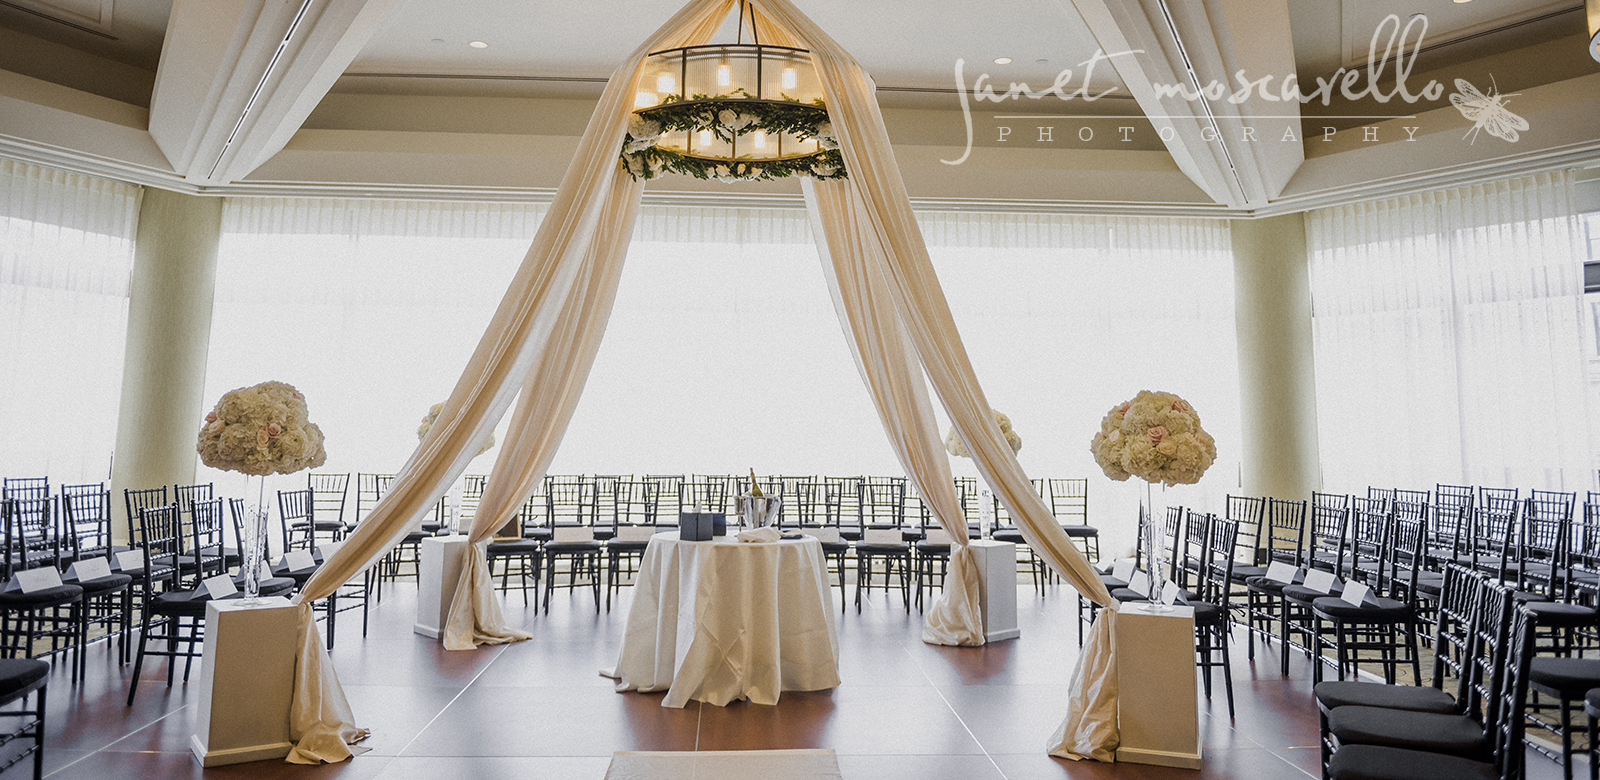 Flou(-e)r Wedding Chuppah - Janet Moscarello Photography